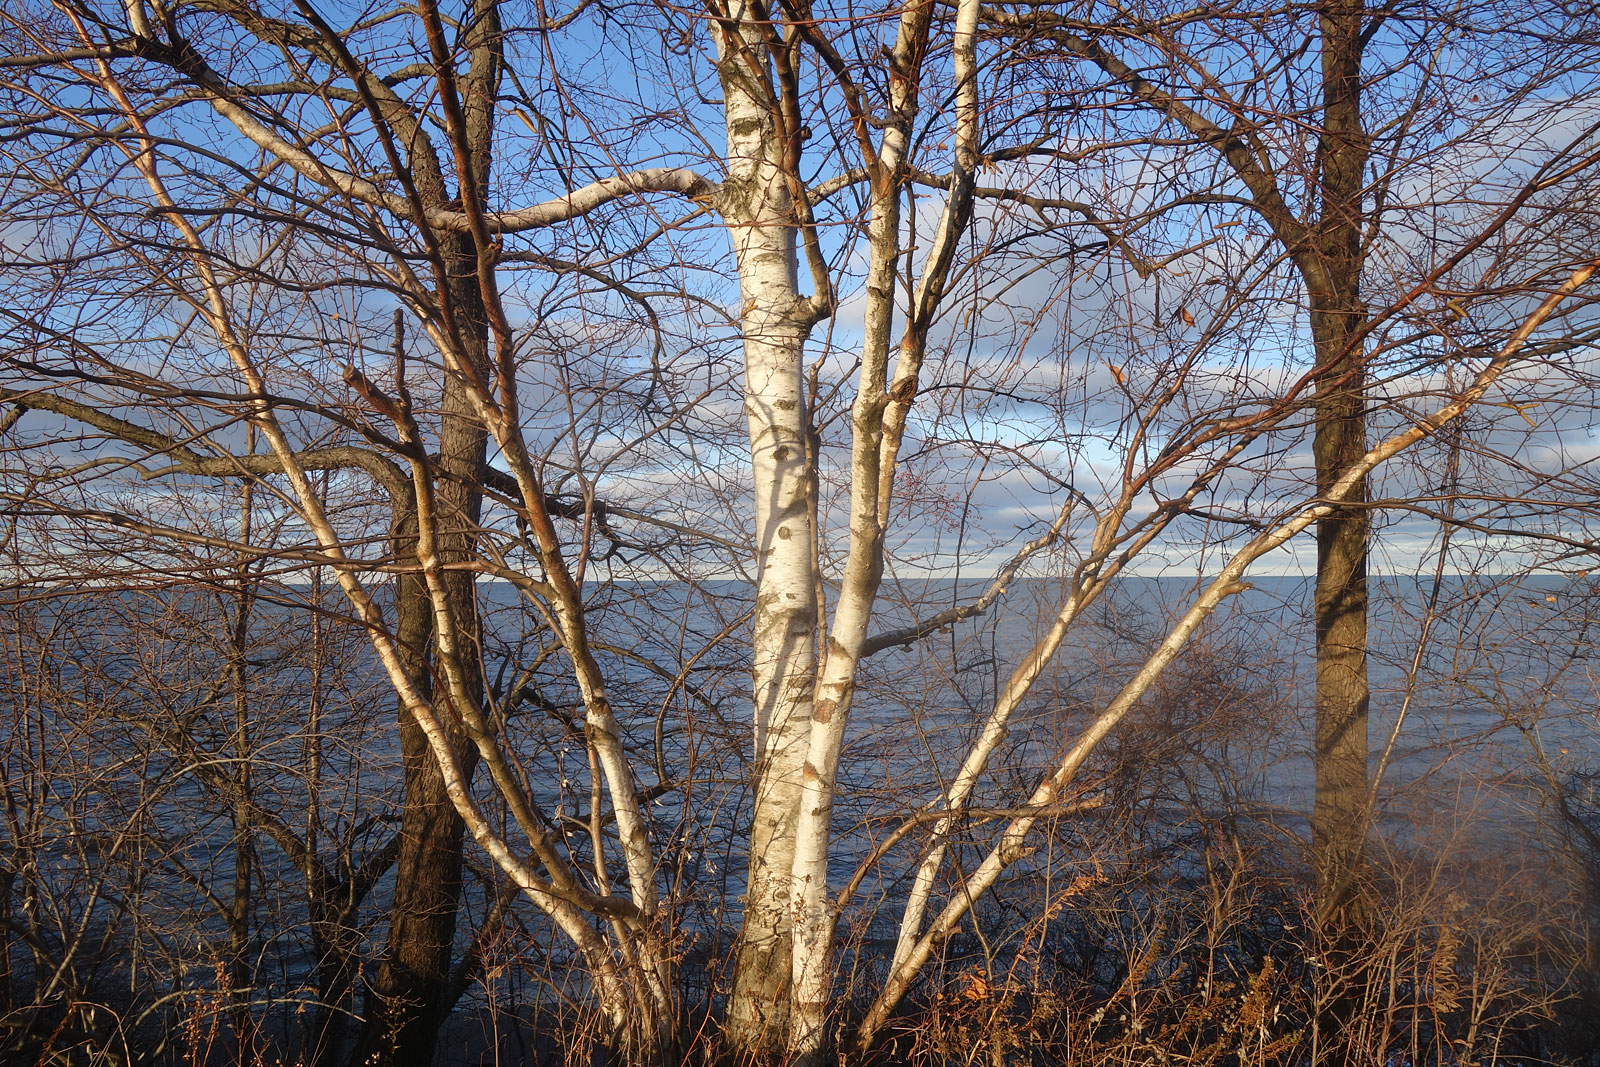 Birch tree along shore of Lake Ontario at Durand Eastman Park